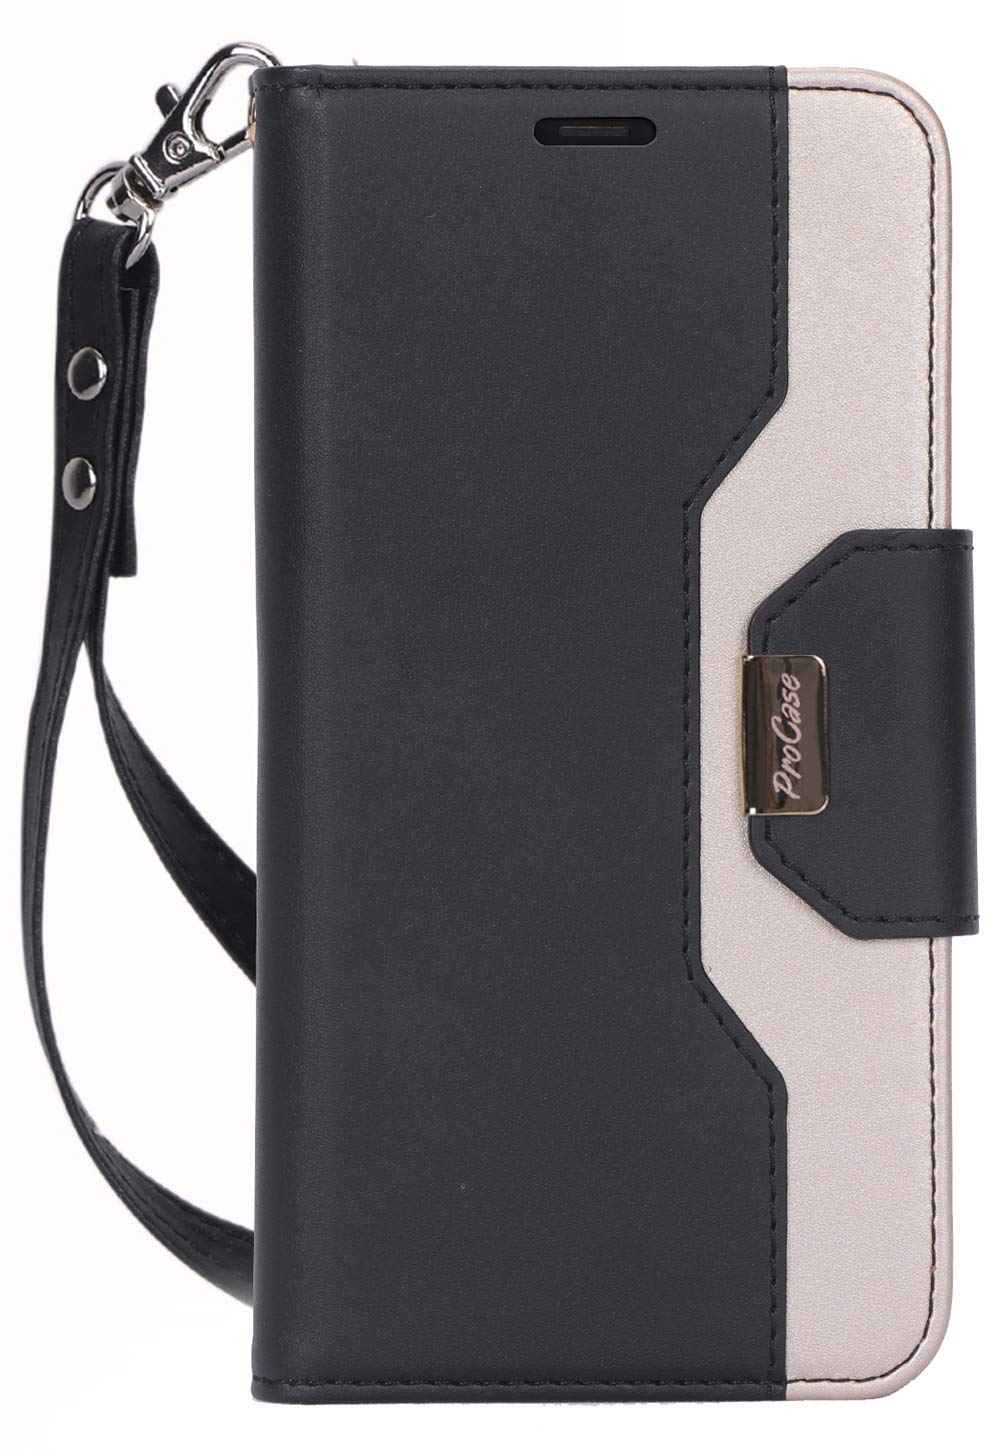 Procase iPhone 11 Pro Max Wallet Case for Women Girls, Folding Flip Case with Card Holder Wrist Strap for iPhone 11 Pro Max 6.5 Inch 2019 –Black